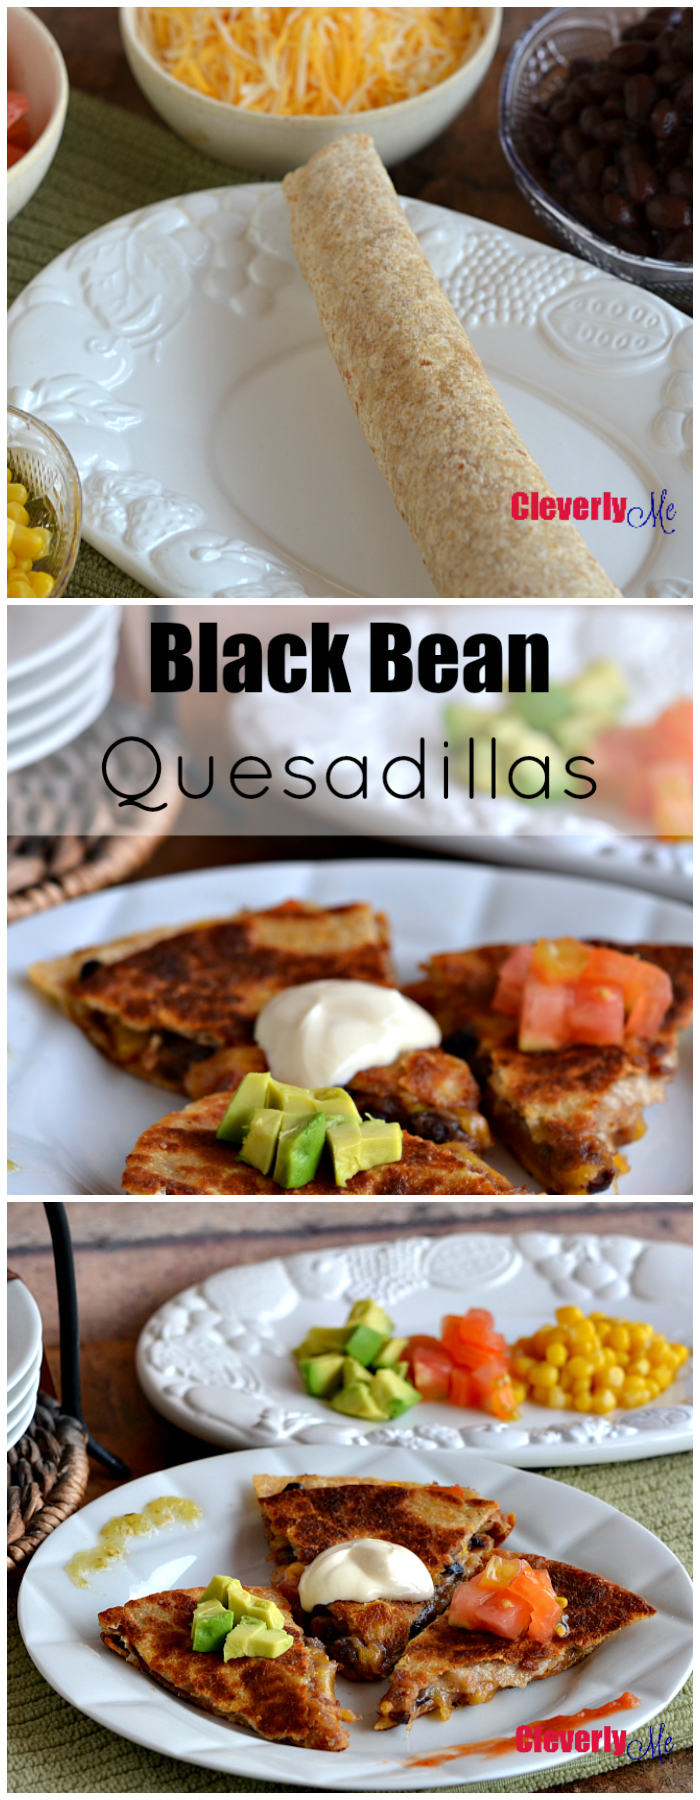 Learn how to make these cheesy and oh-so-delicious Black Bean Quesadillas. They are cheesy and super easy to prepare. Get the recipe at CleverlyMe.com